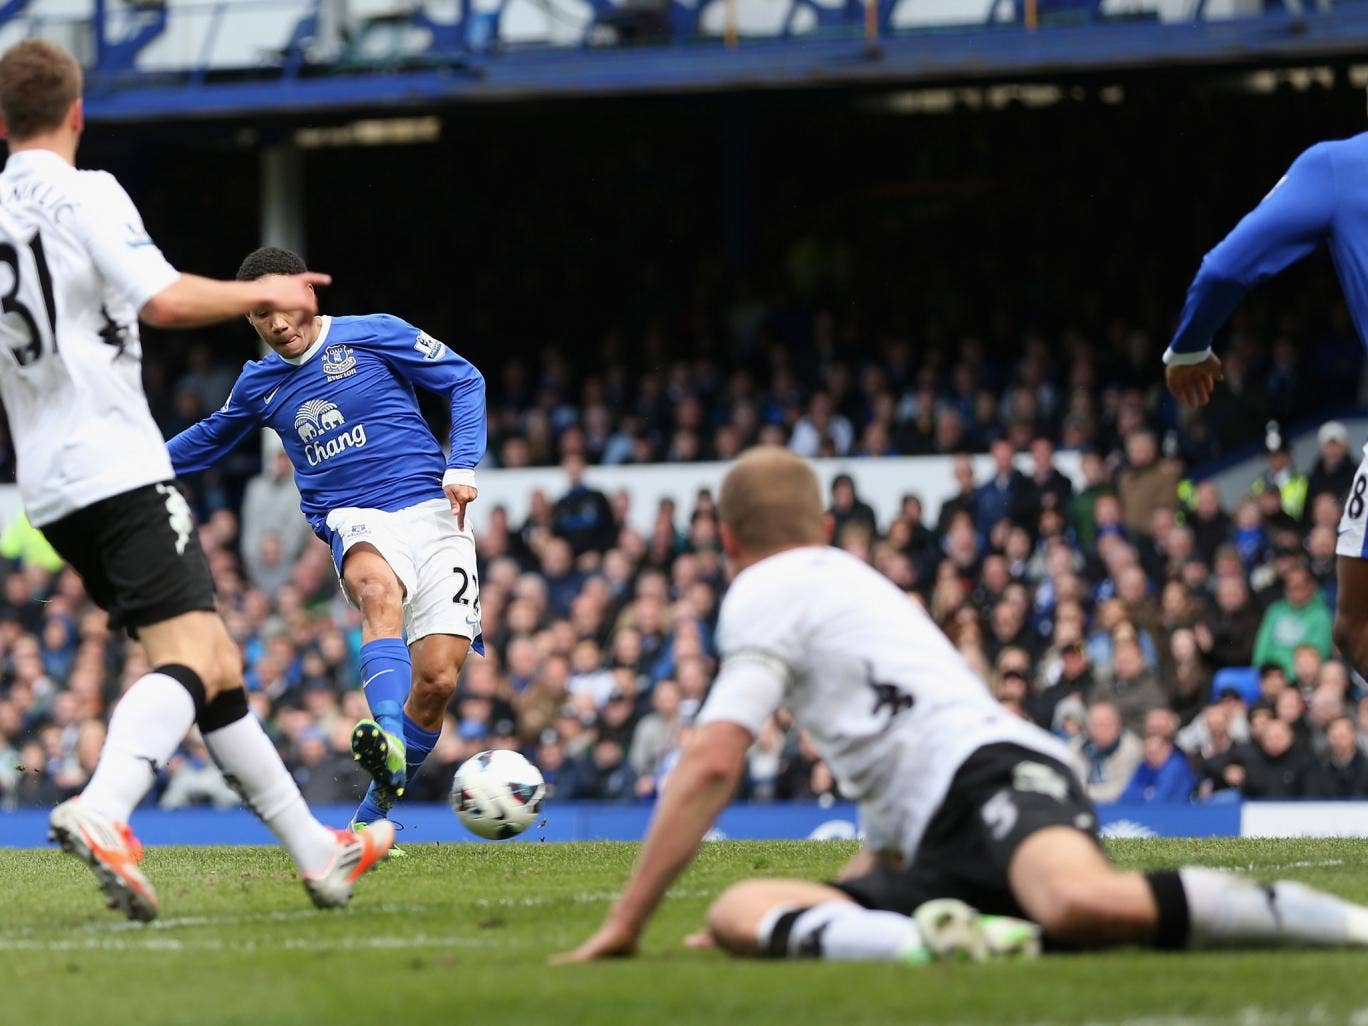 Steven Pienaar of Everton scores the first goal during the Barclays Premier League match between Everton and Fulham